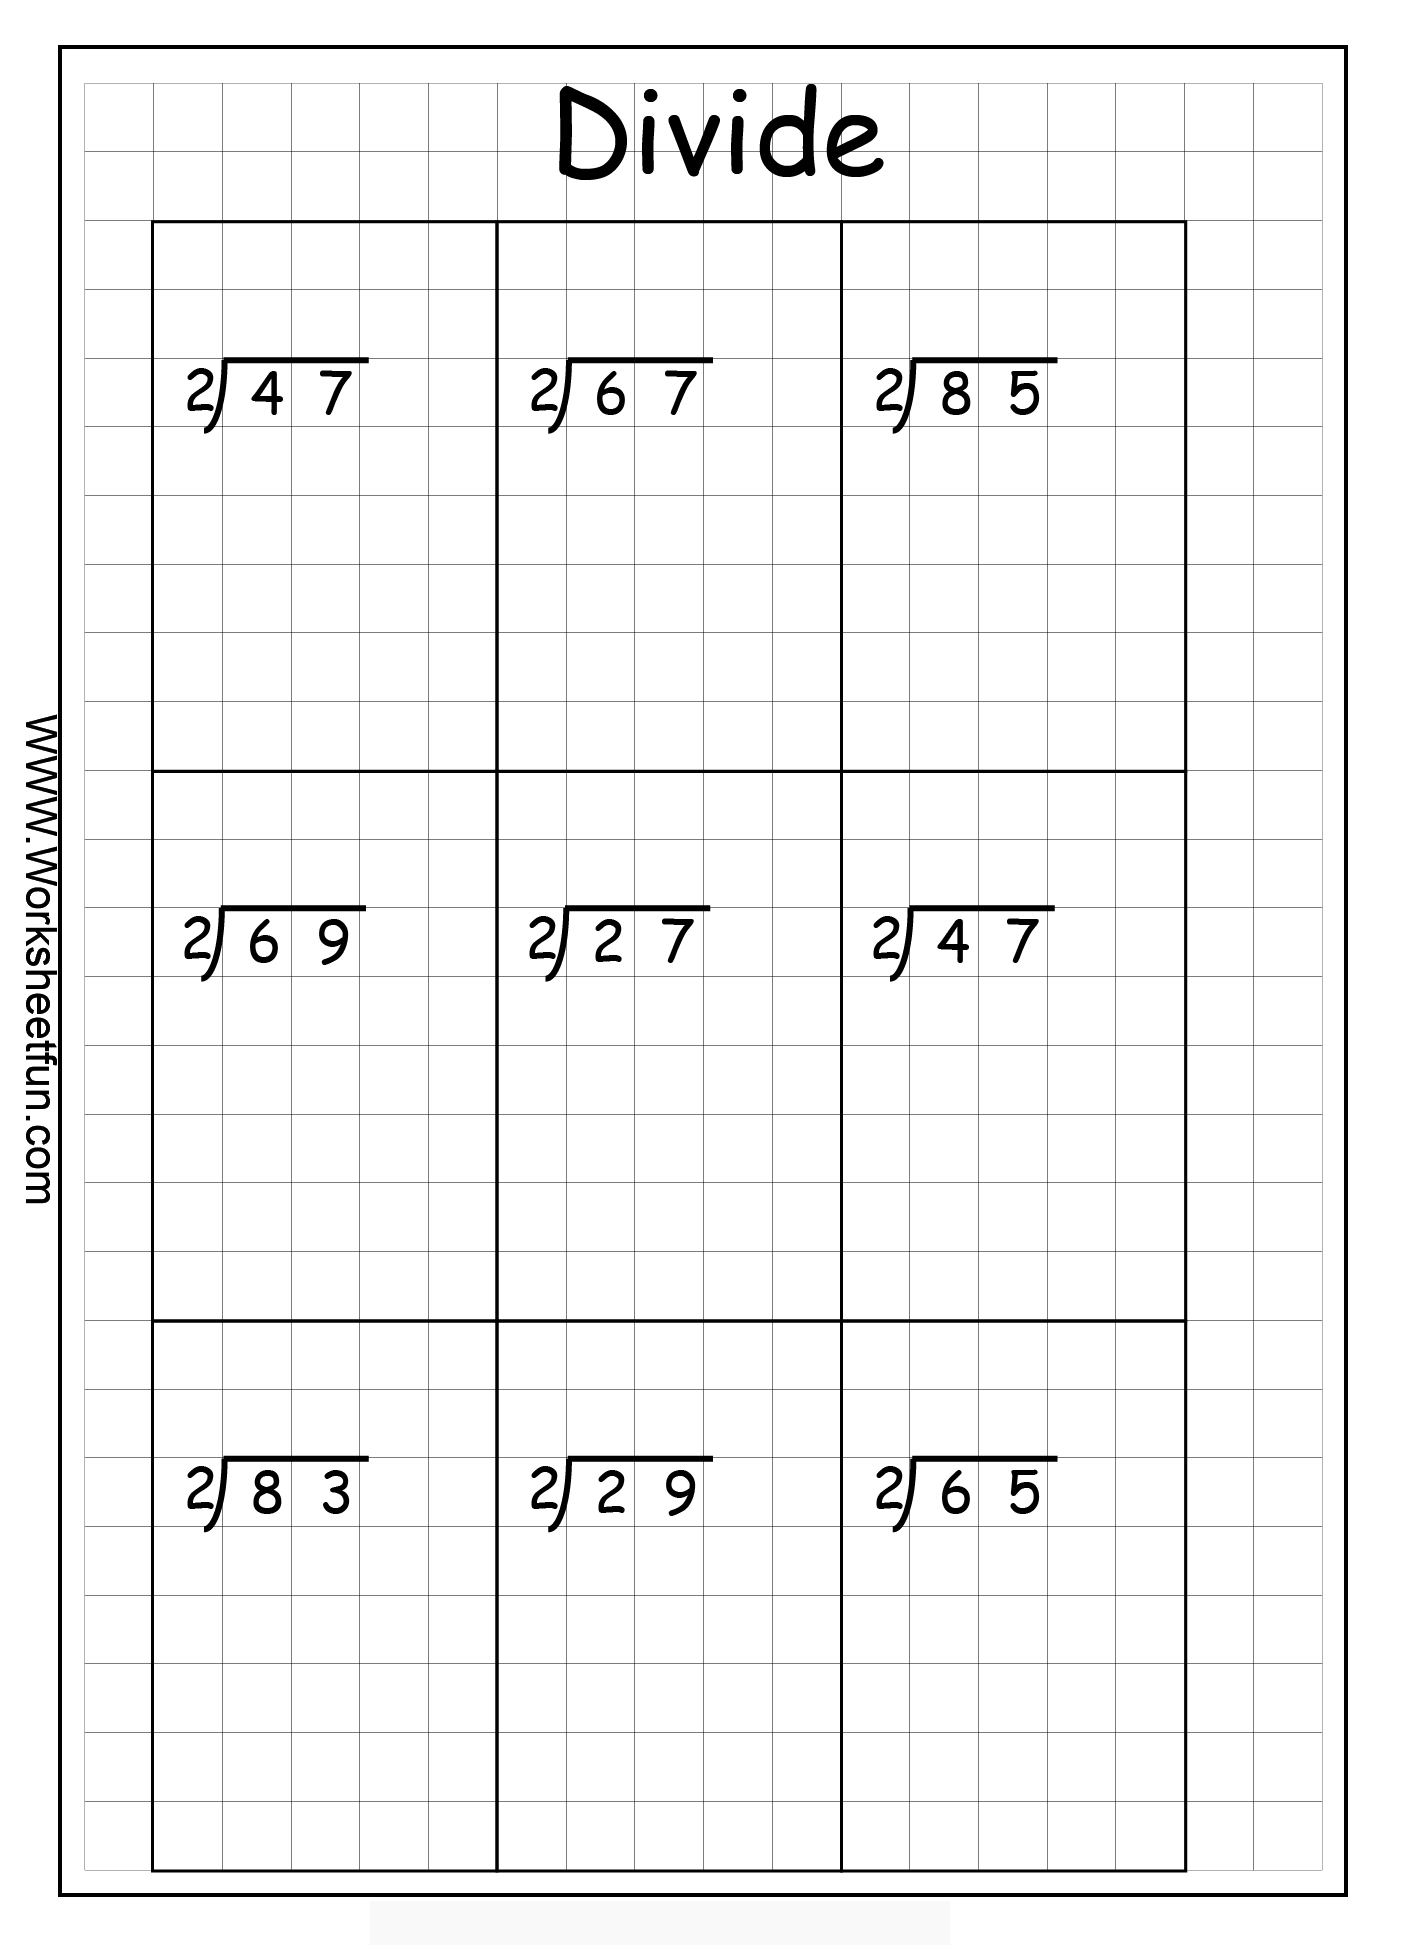 Long Division 2 Digits By 1 Digit With Remainders 8 Worksheets Free Printable Worksheets